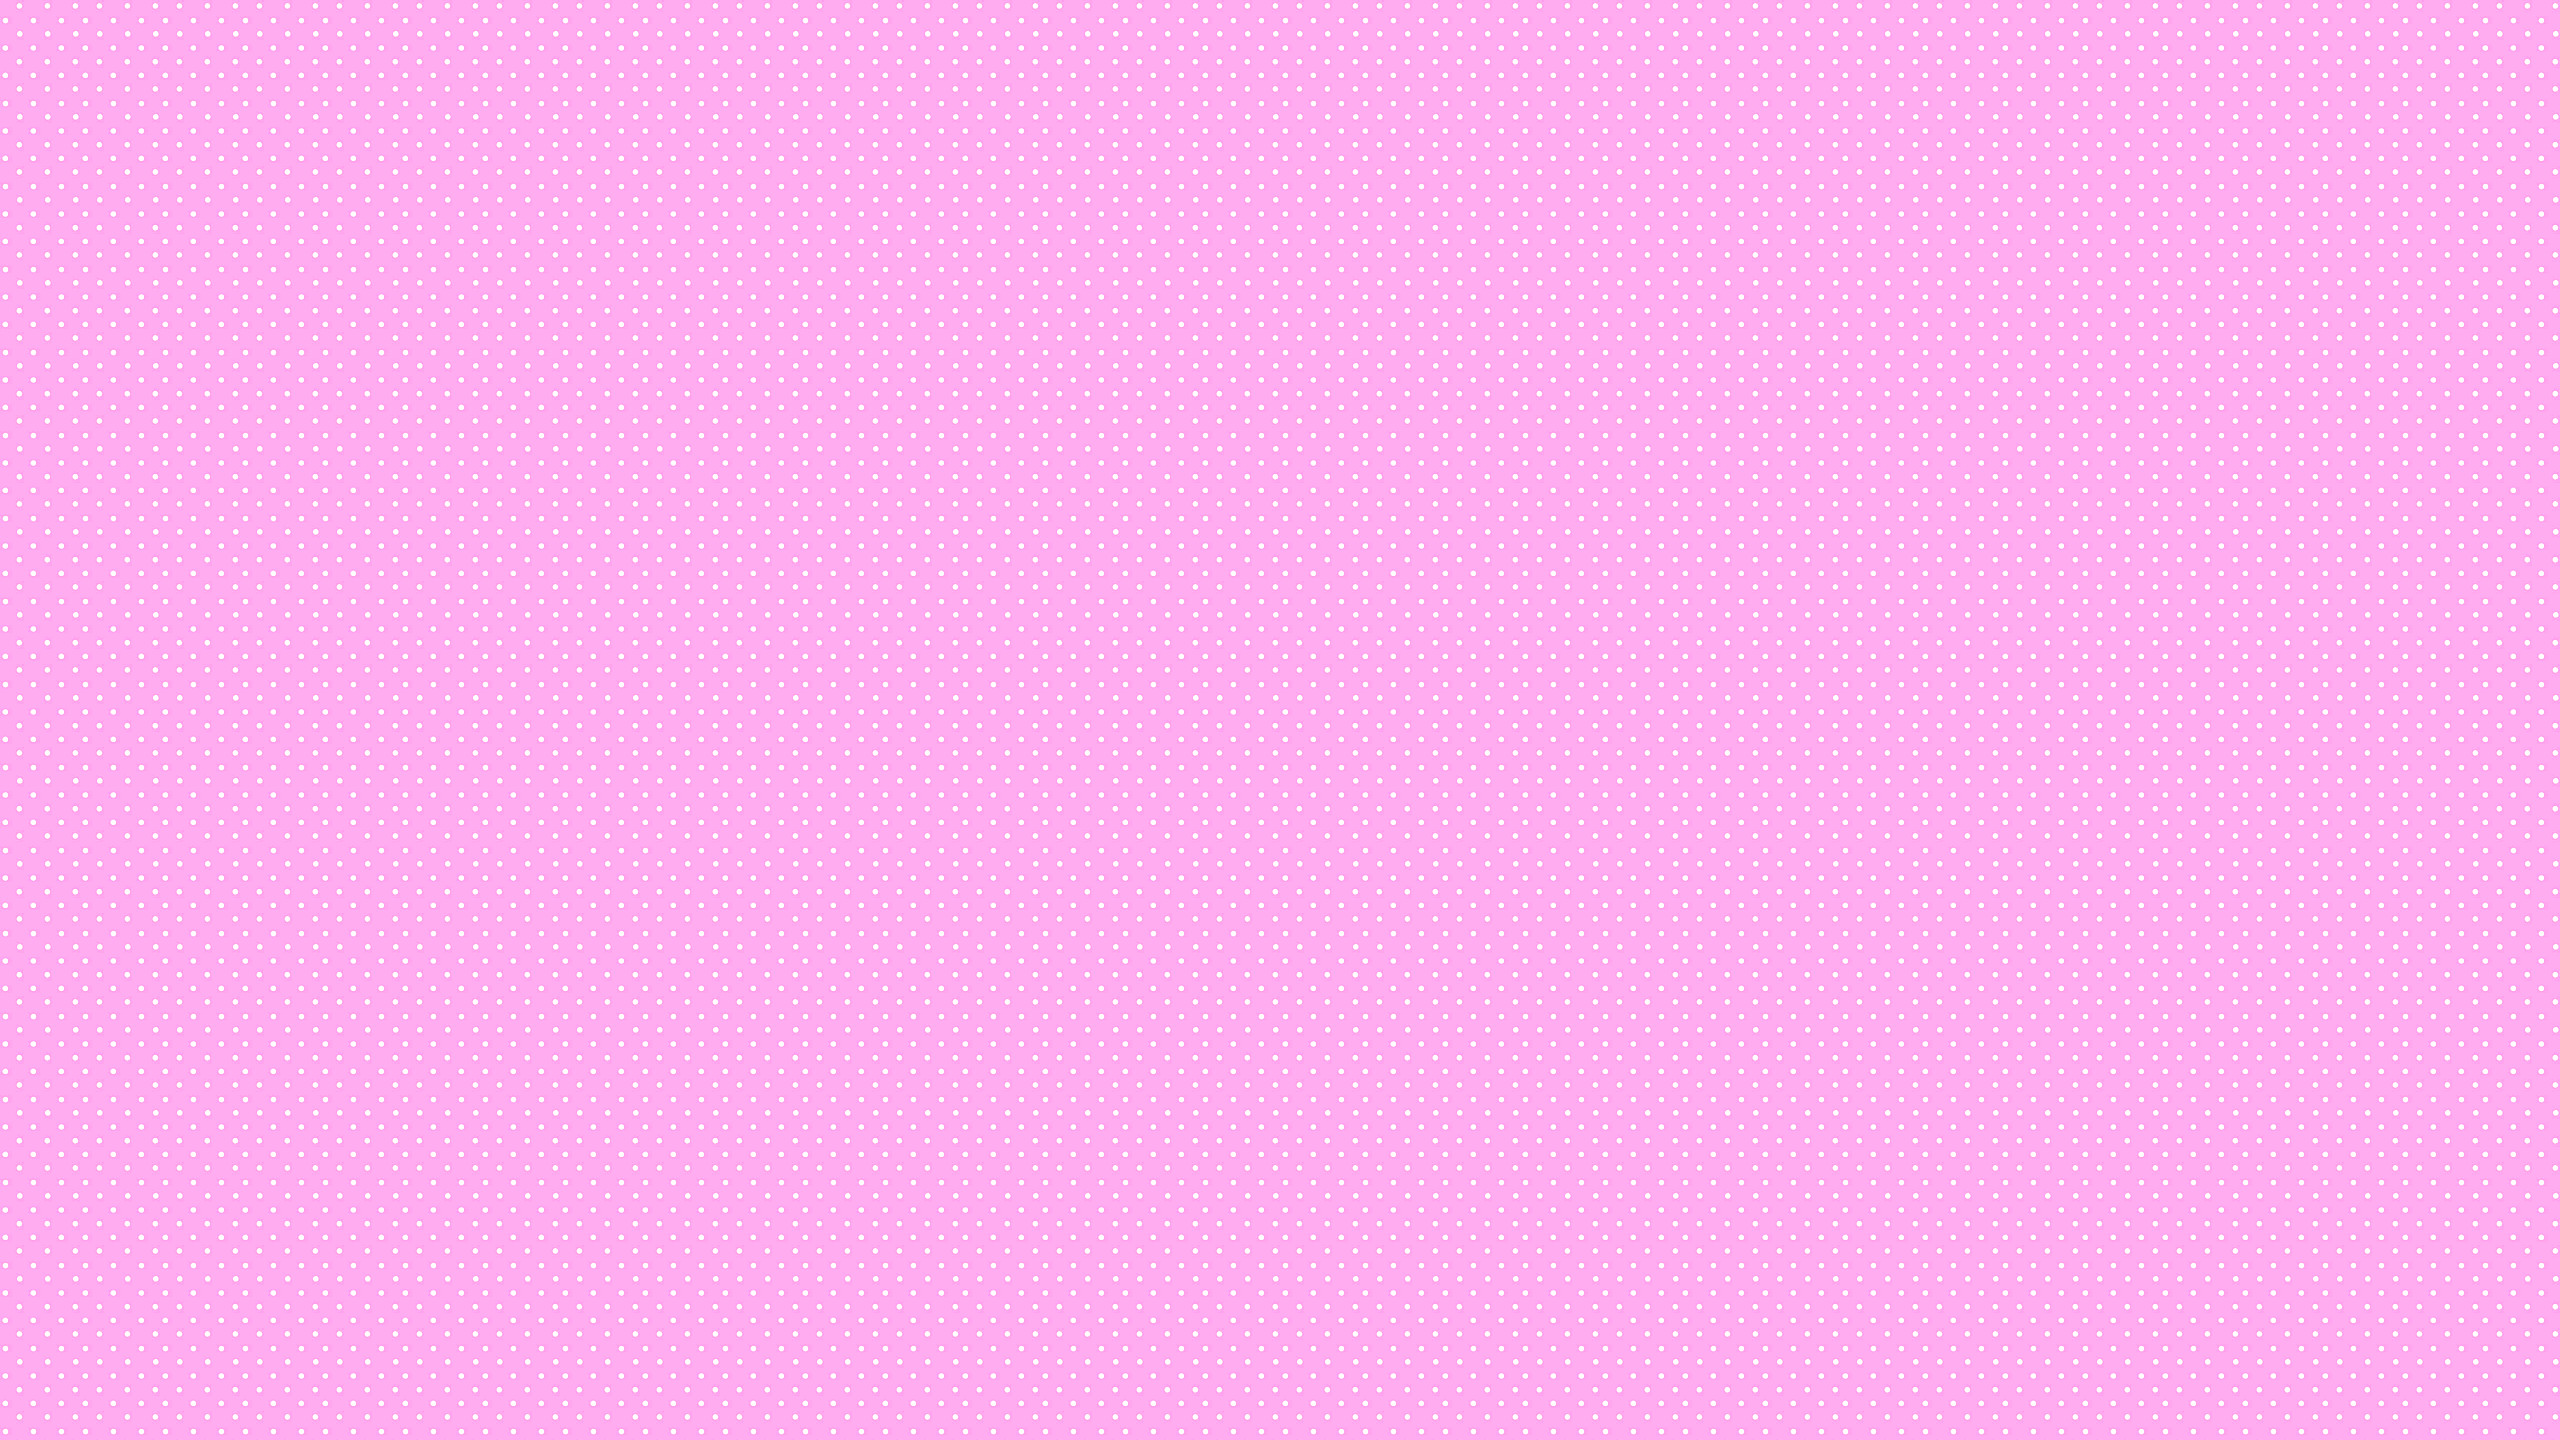 2560x1440 Pastel Pink Dots Desktop Wallpaper is easy. Just save the wallpaper .